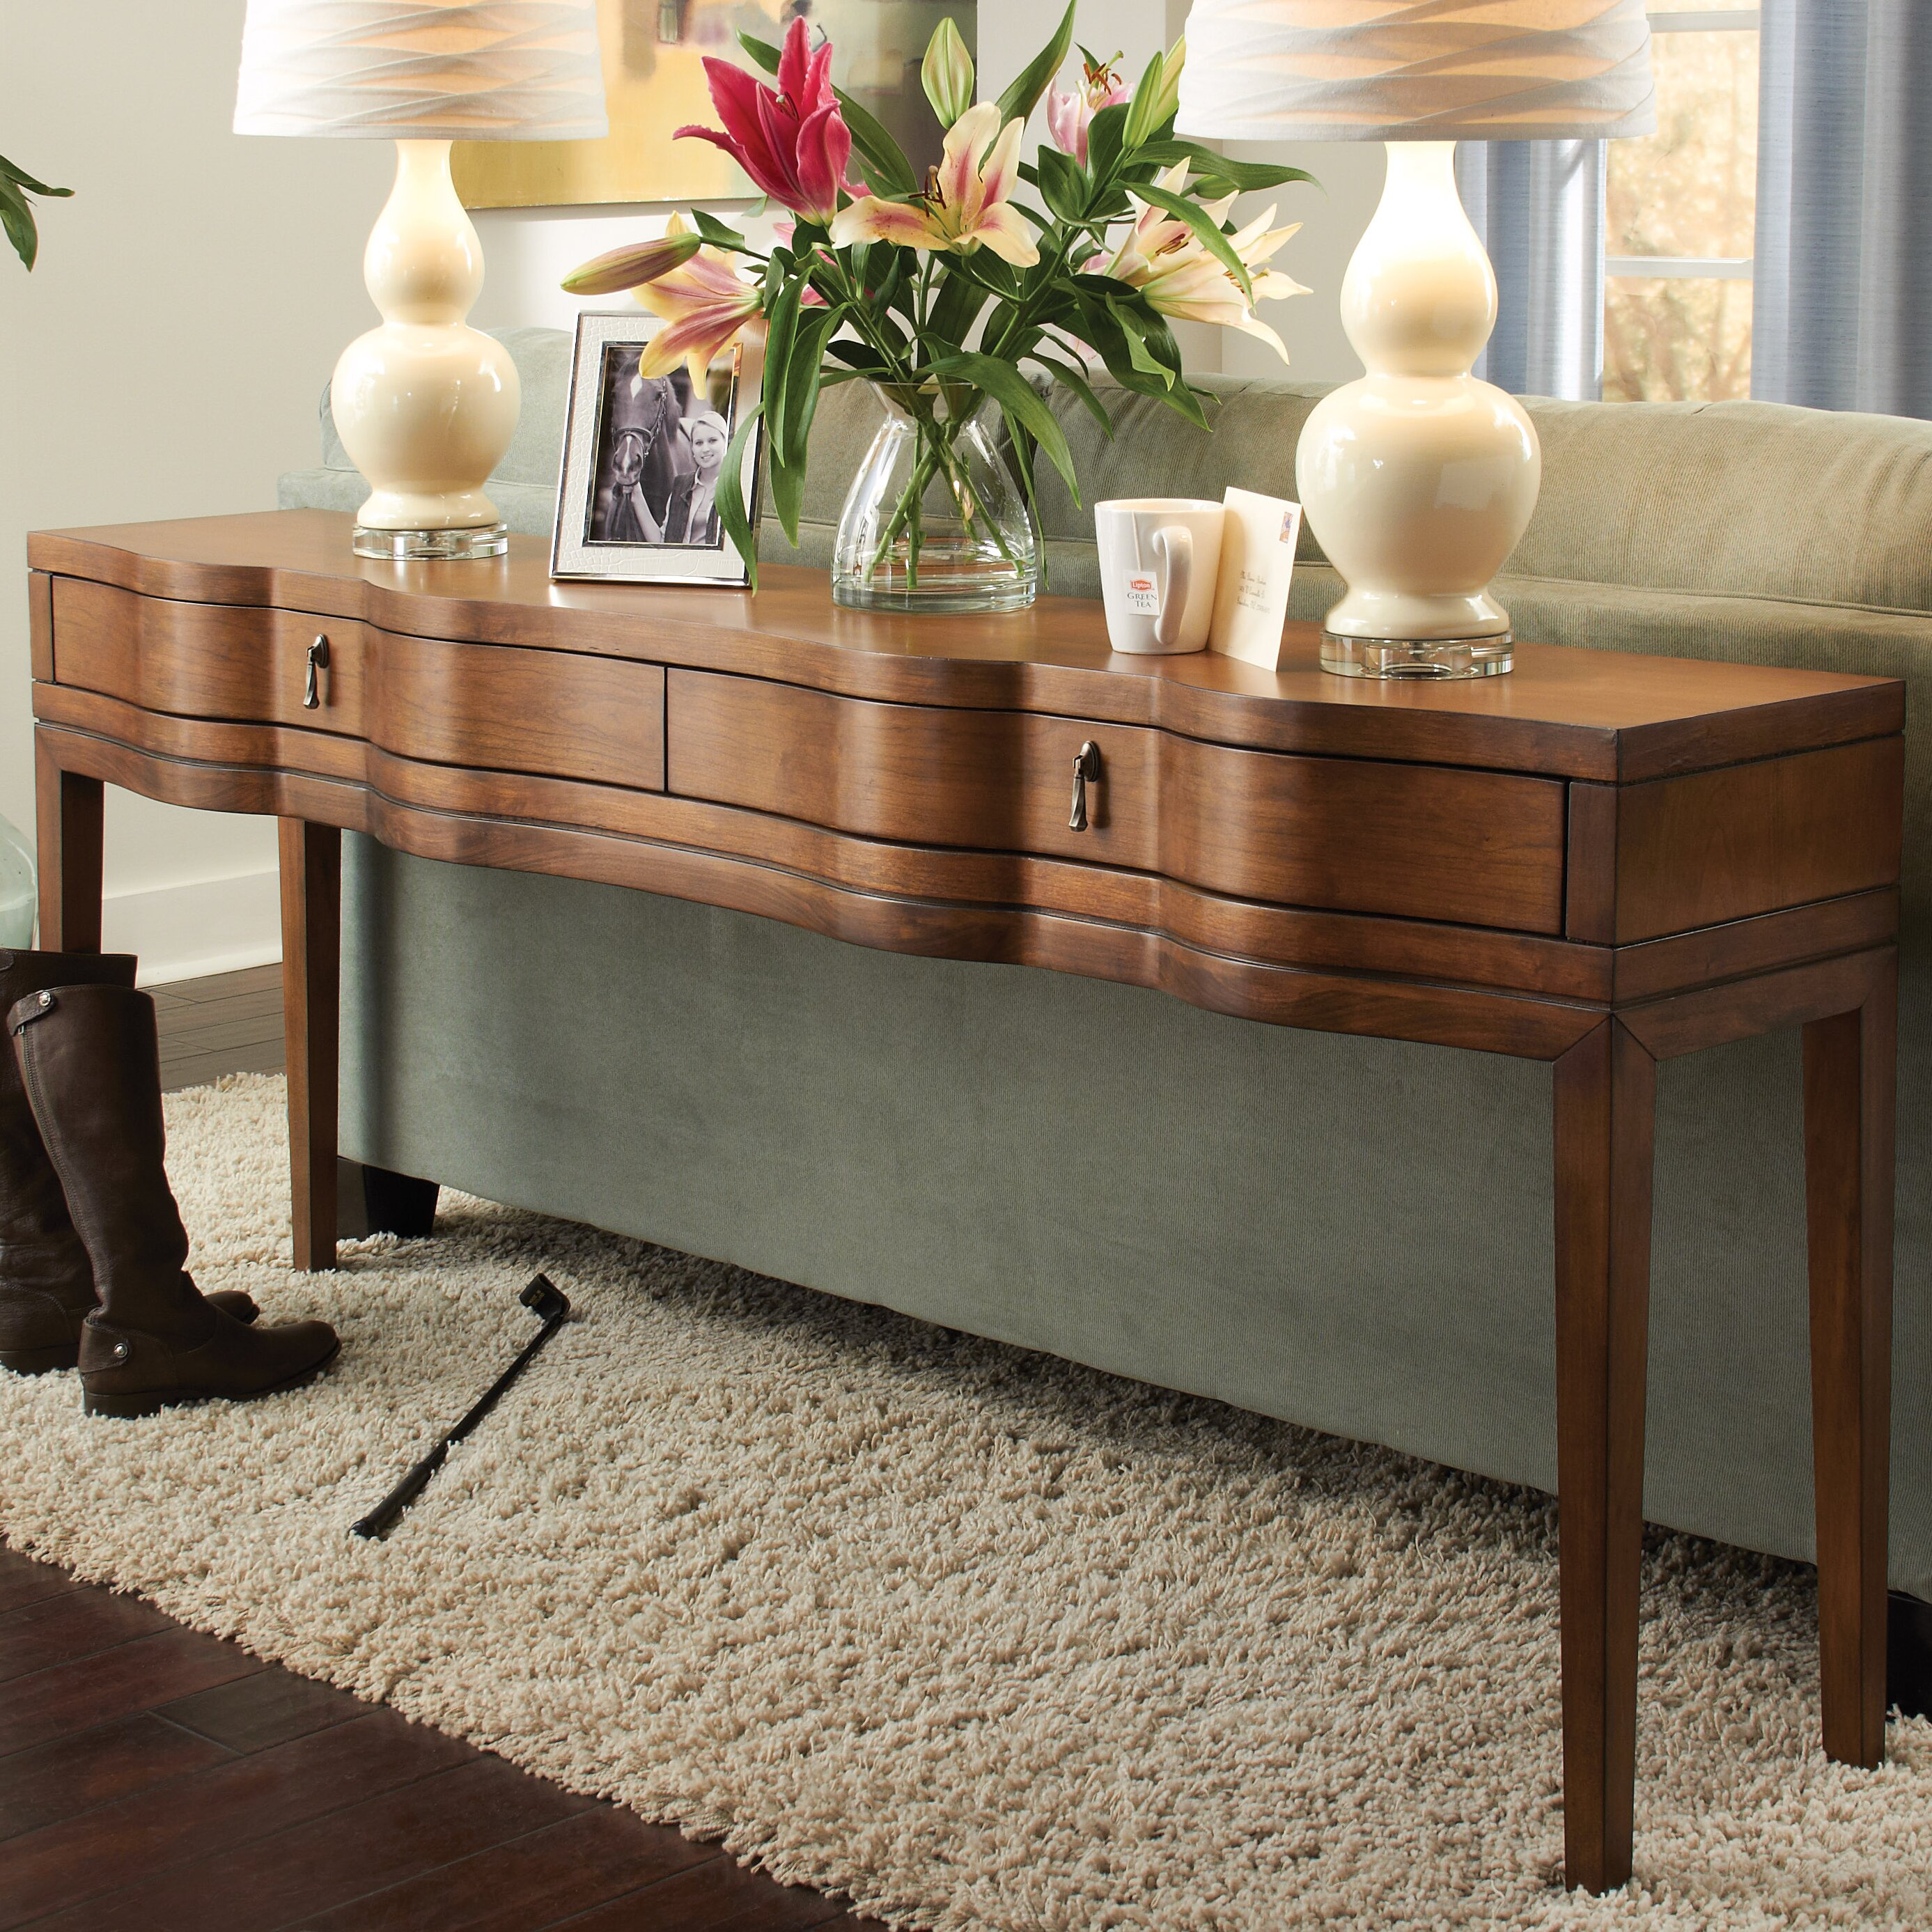 darby home co skelley console table reviews wayfair. Black Bedroom Furniture Sets. Home Design Ideas